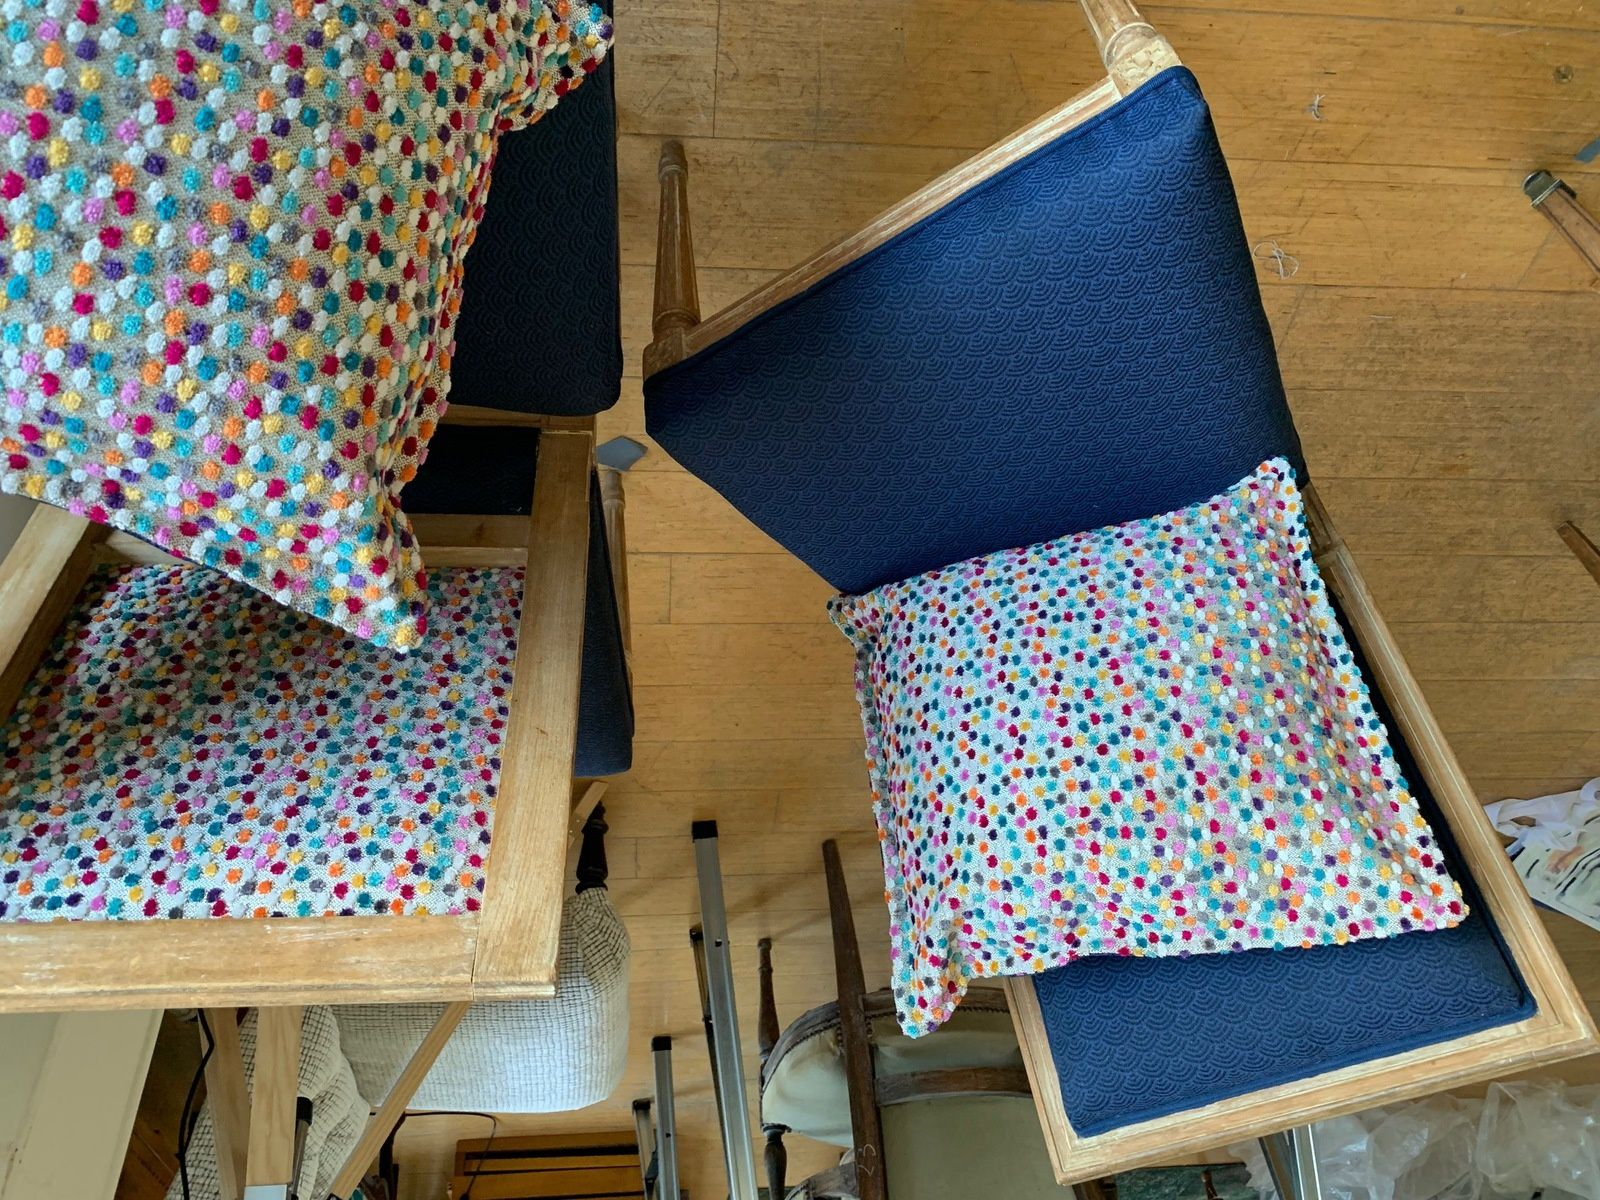 Chaises Smarties !